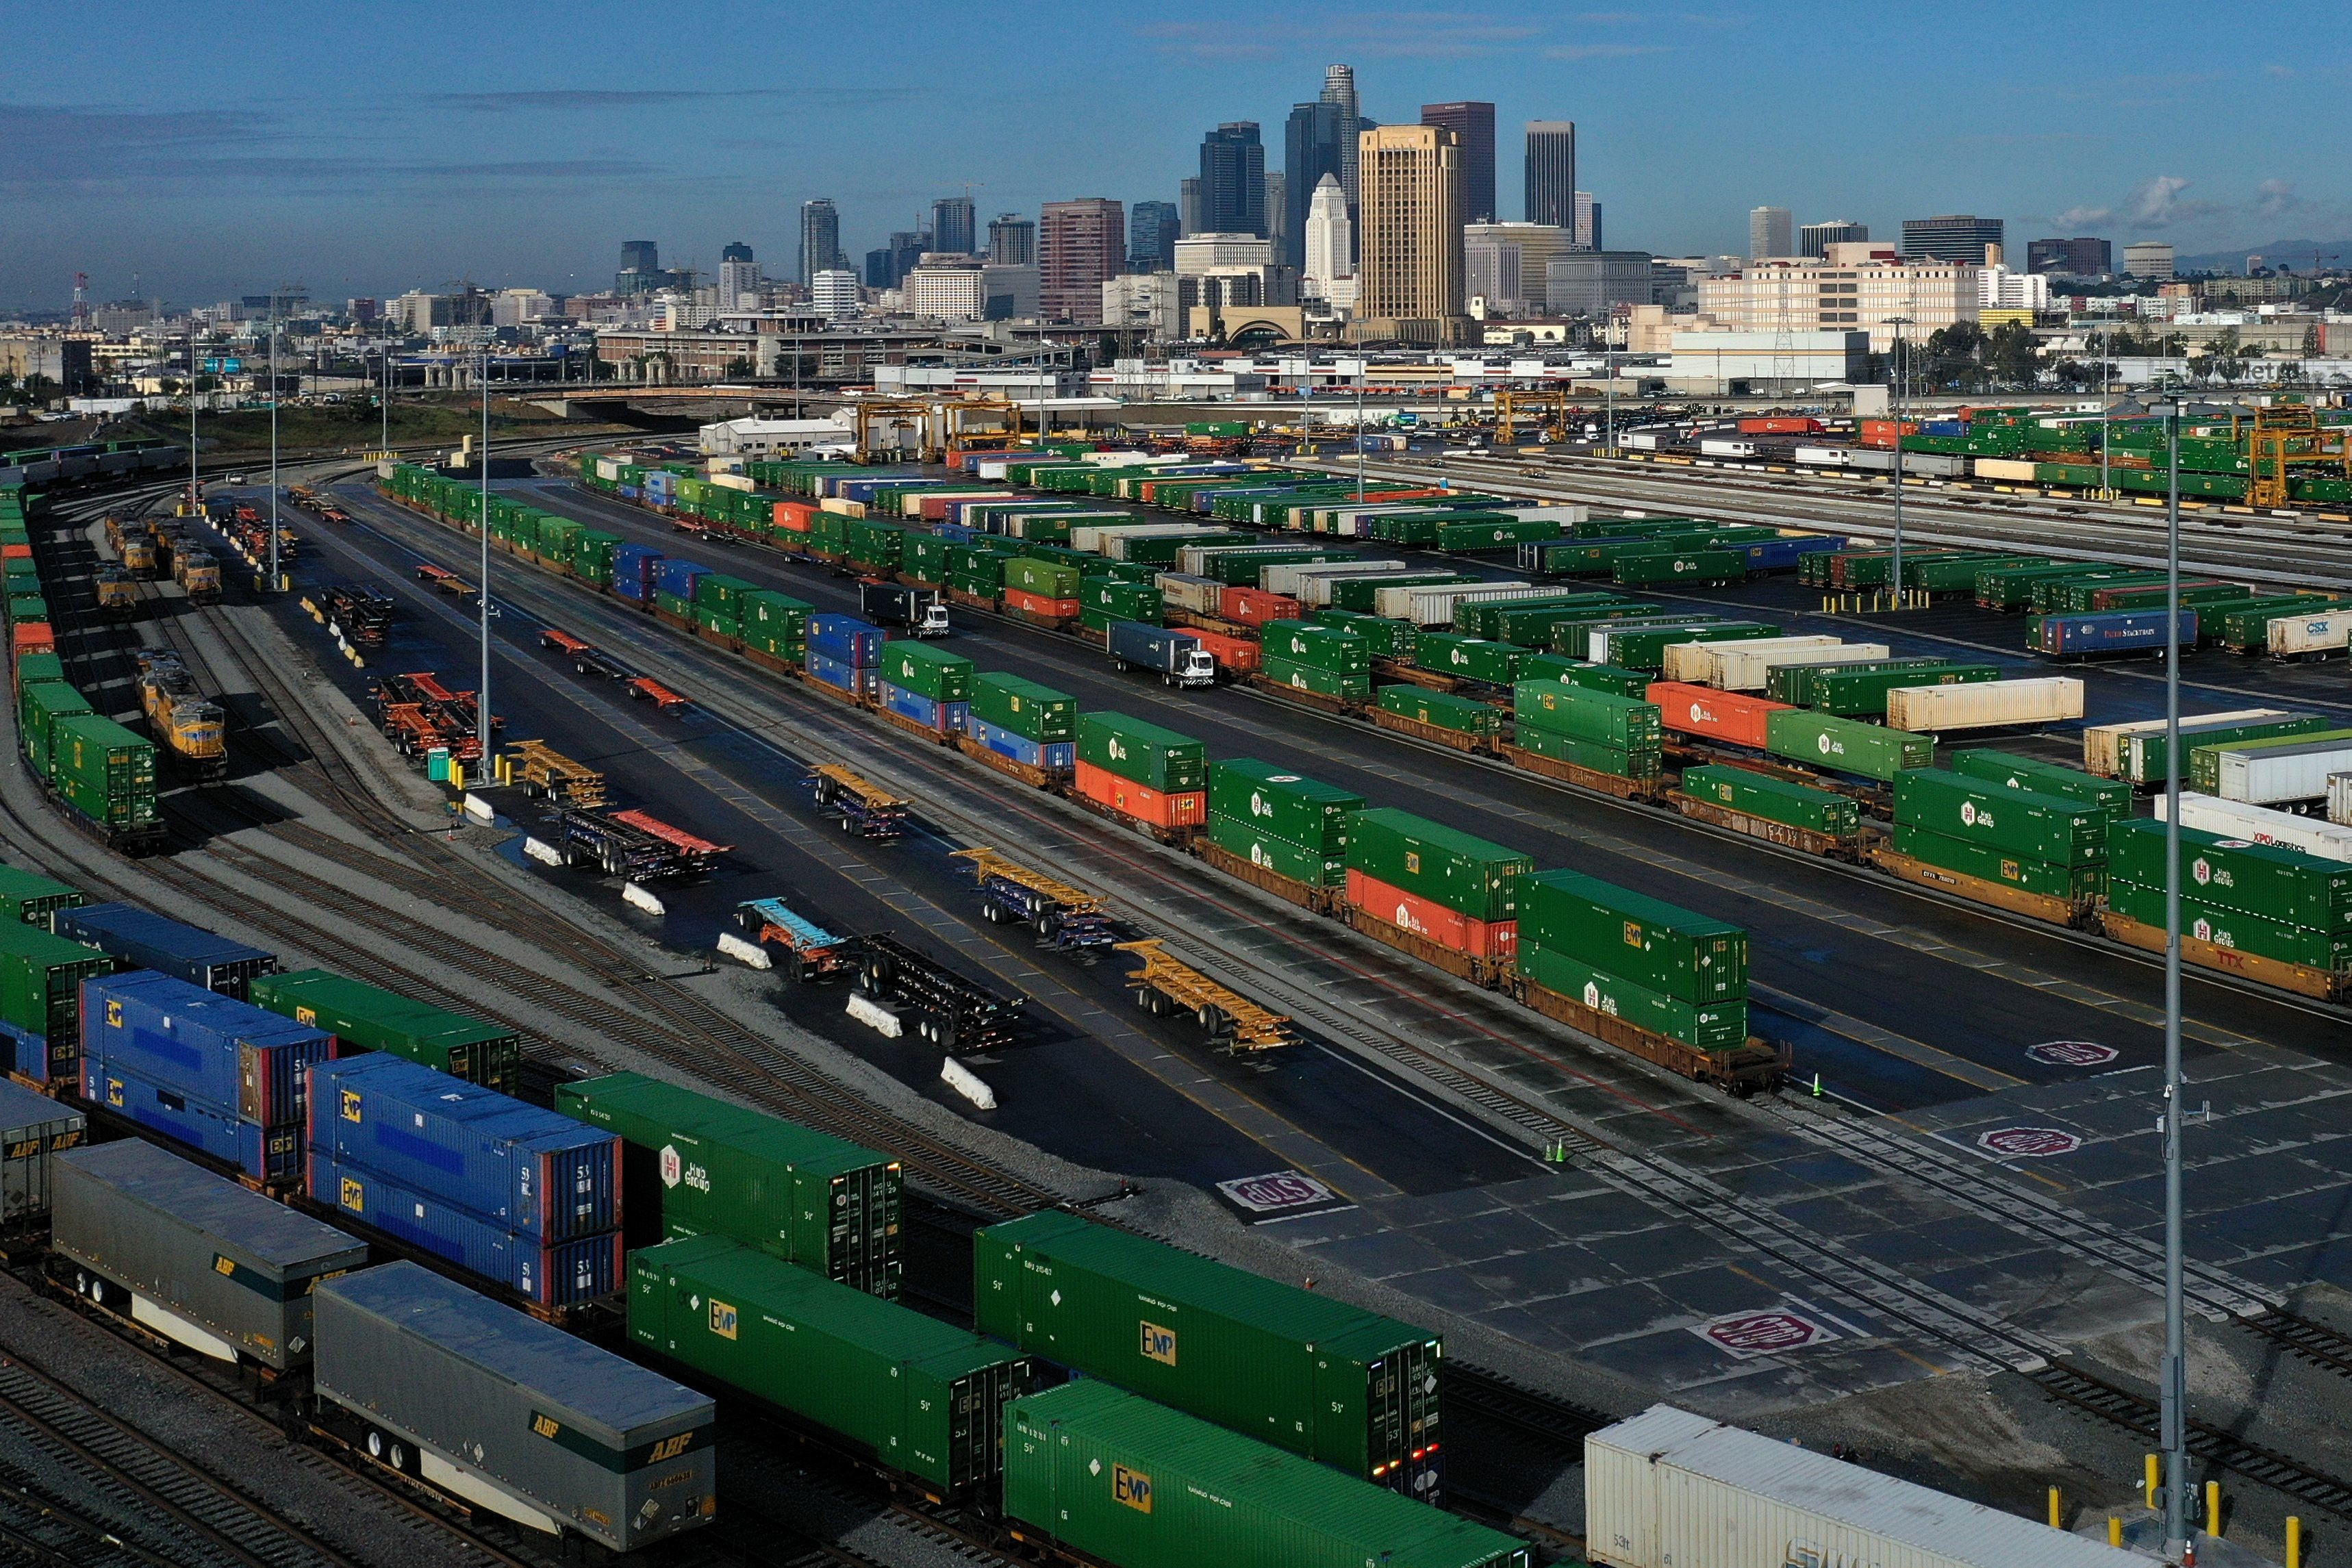 Shipping containers sit on train tracks downtown as the spread of the coronavirus disease (COVID-19) continues, in Los Angeles, California, U.S., April 7, 2020. REUTERS/Lucy Nicholson - RC2WZF9TJKKI